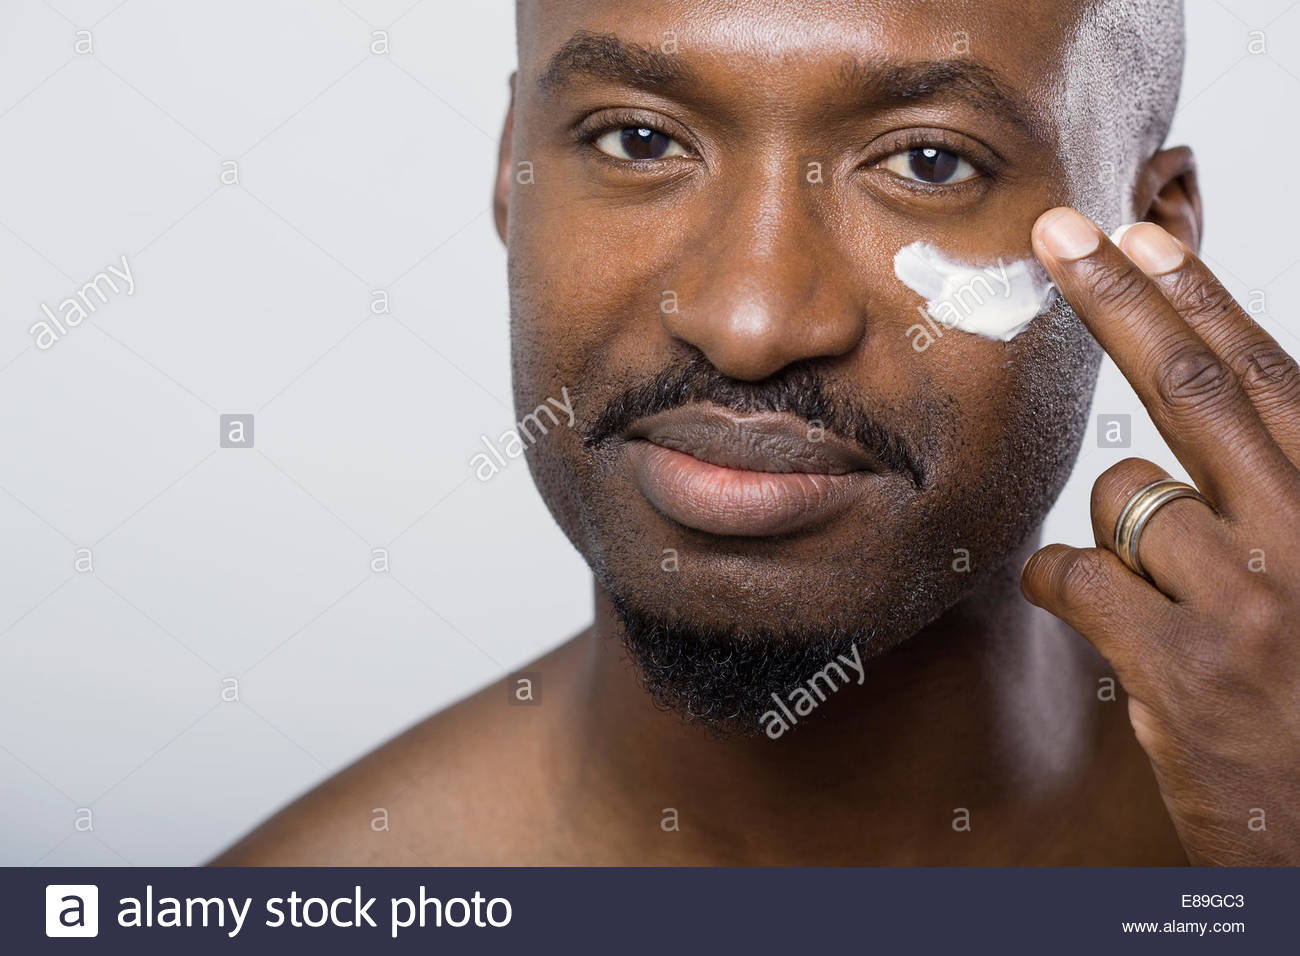 Close up of man applying moisturizer under eye Stock Photo